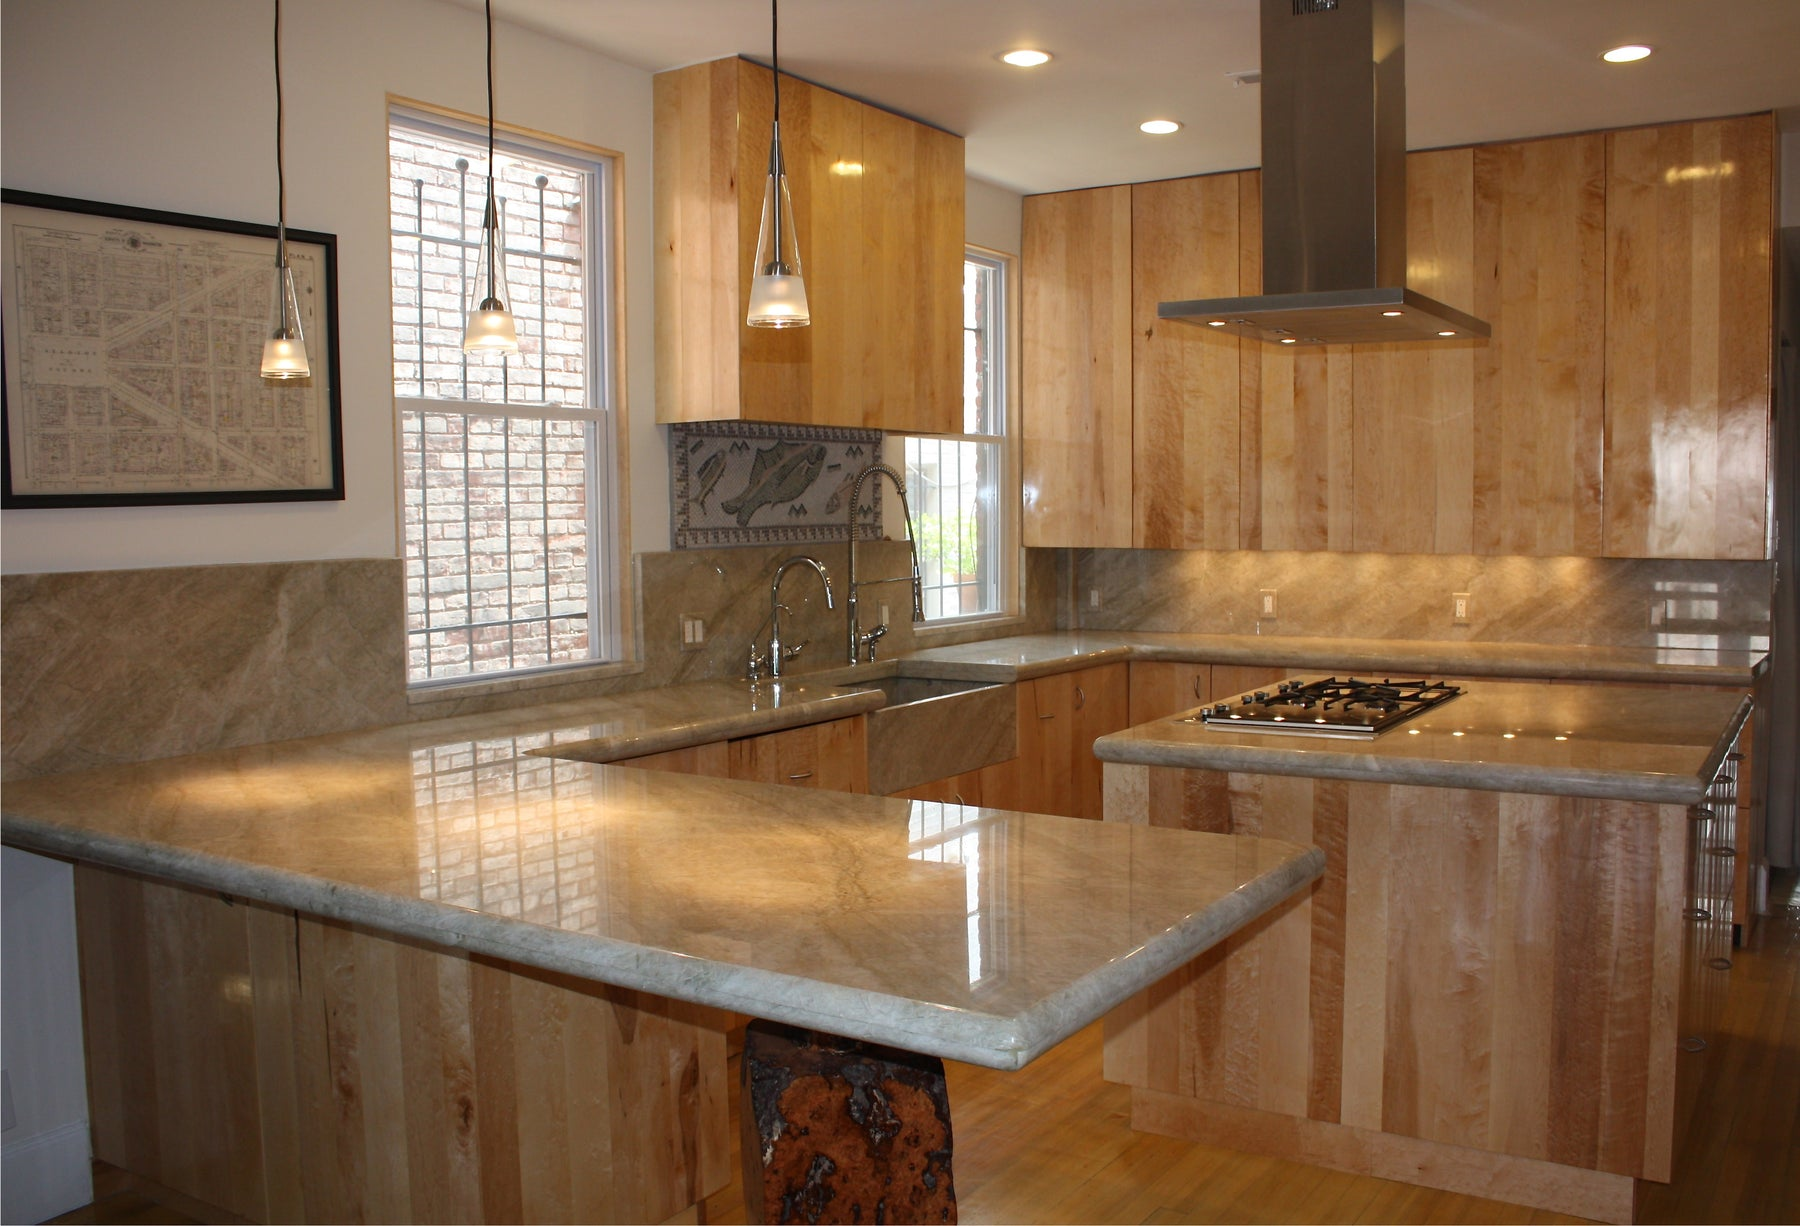 Tips for selecting new lighting fixtures for your kitchen